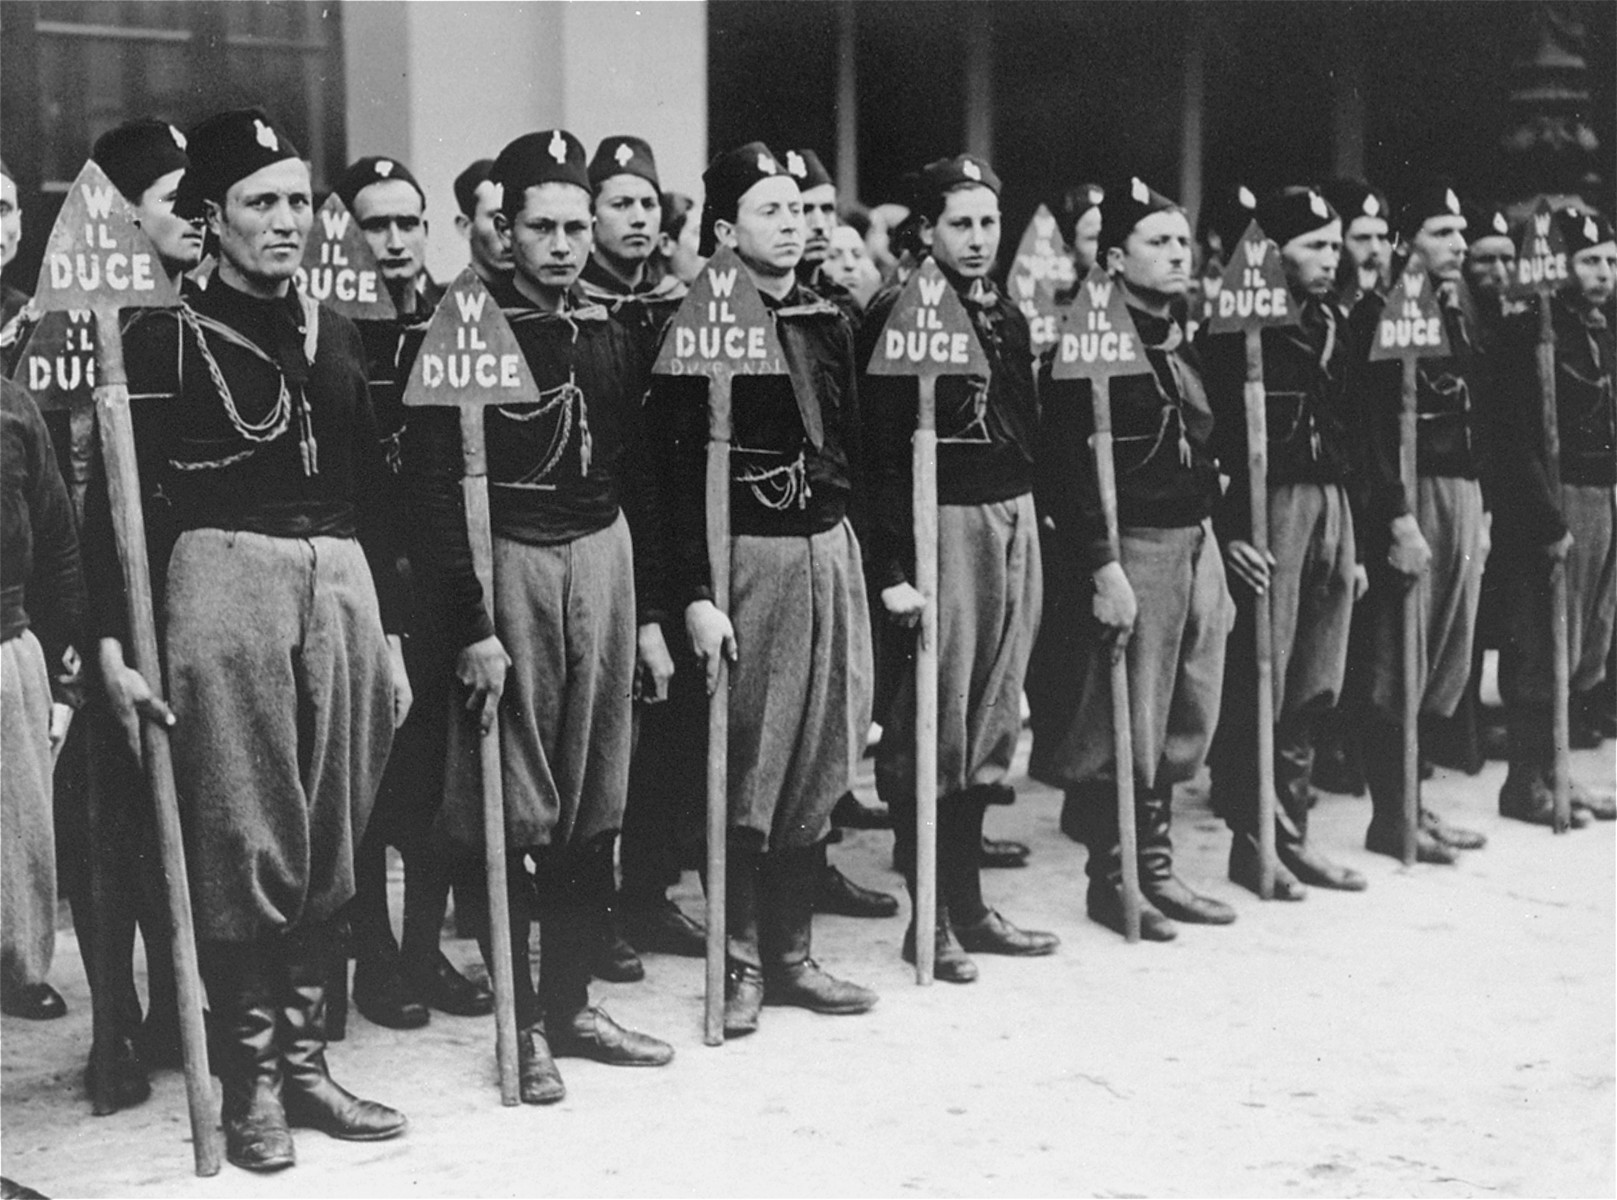 A unit of Italian blackshirts stands at attention holding spades during a fascist demonstration.